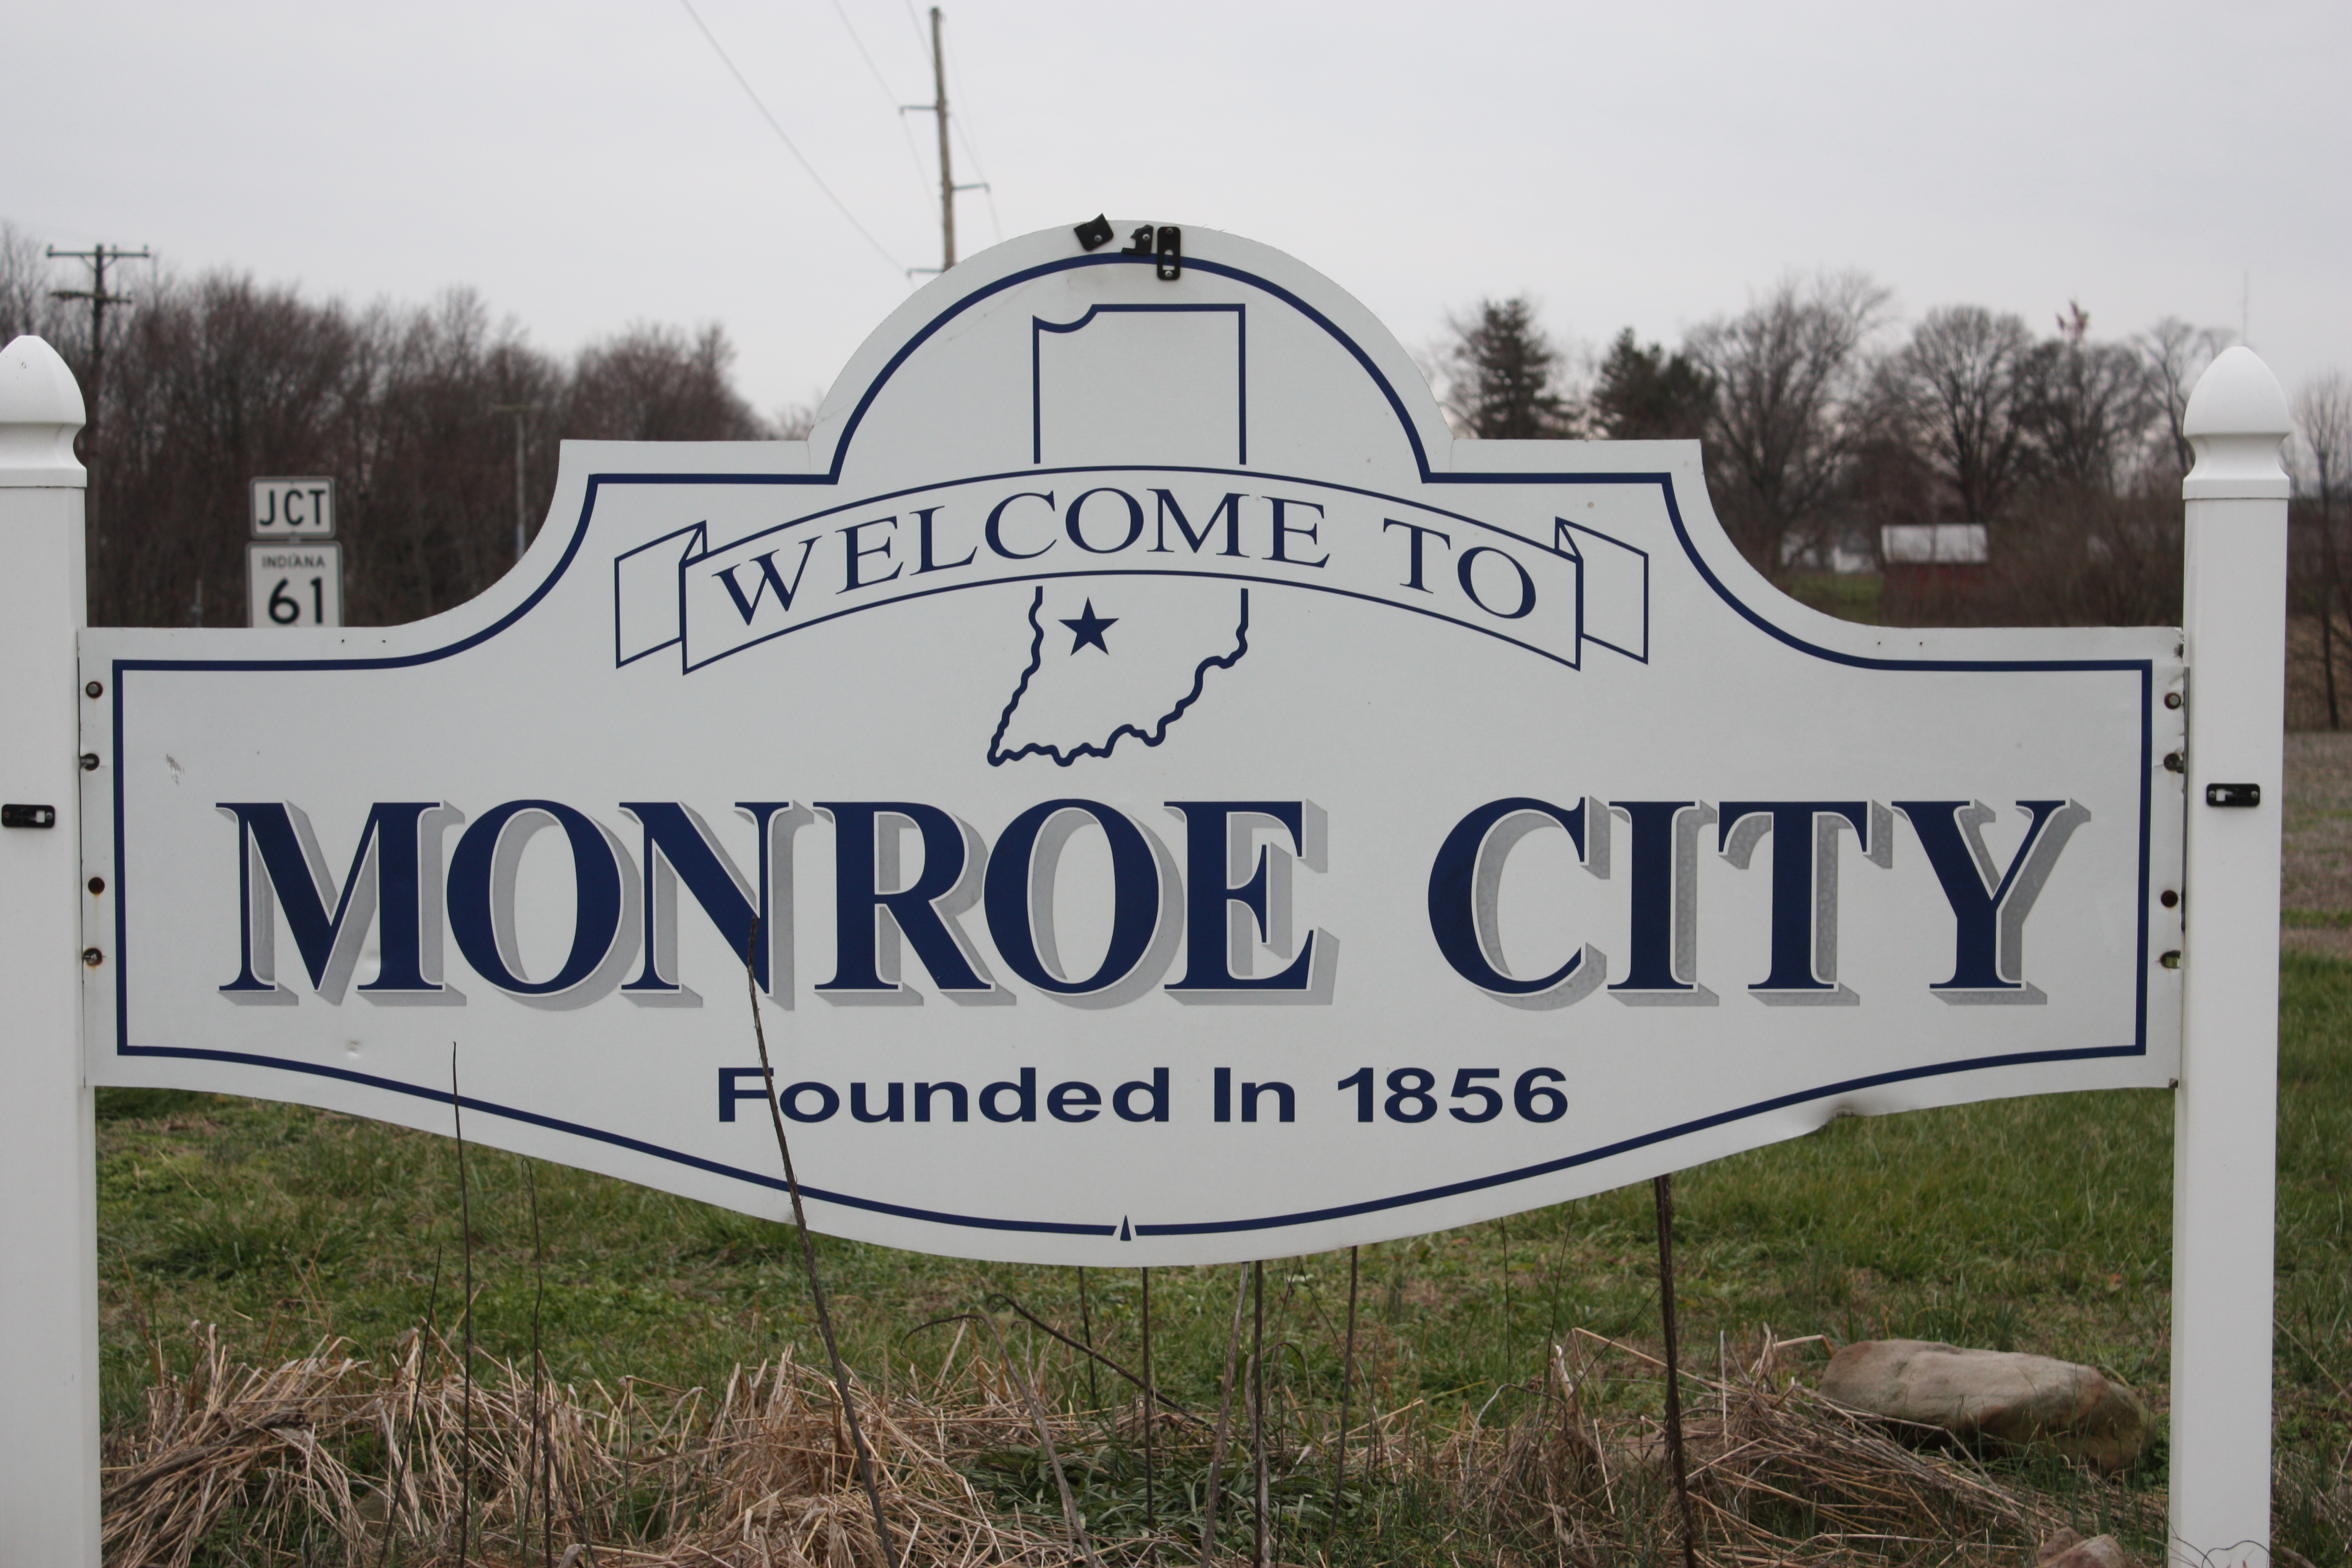 monroe city chatrooms Chat with local people in monroe city and missouri right now wireclub home chat rooms forums find people places search join now log in home chat rooms.